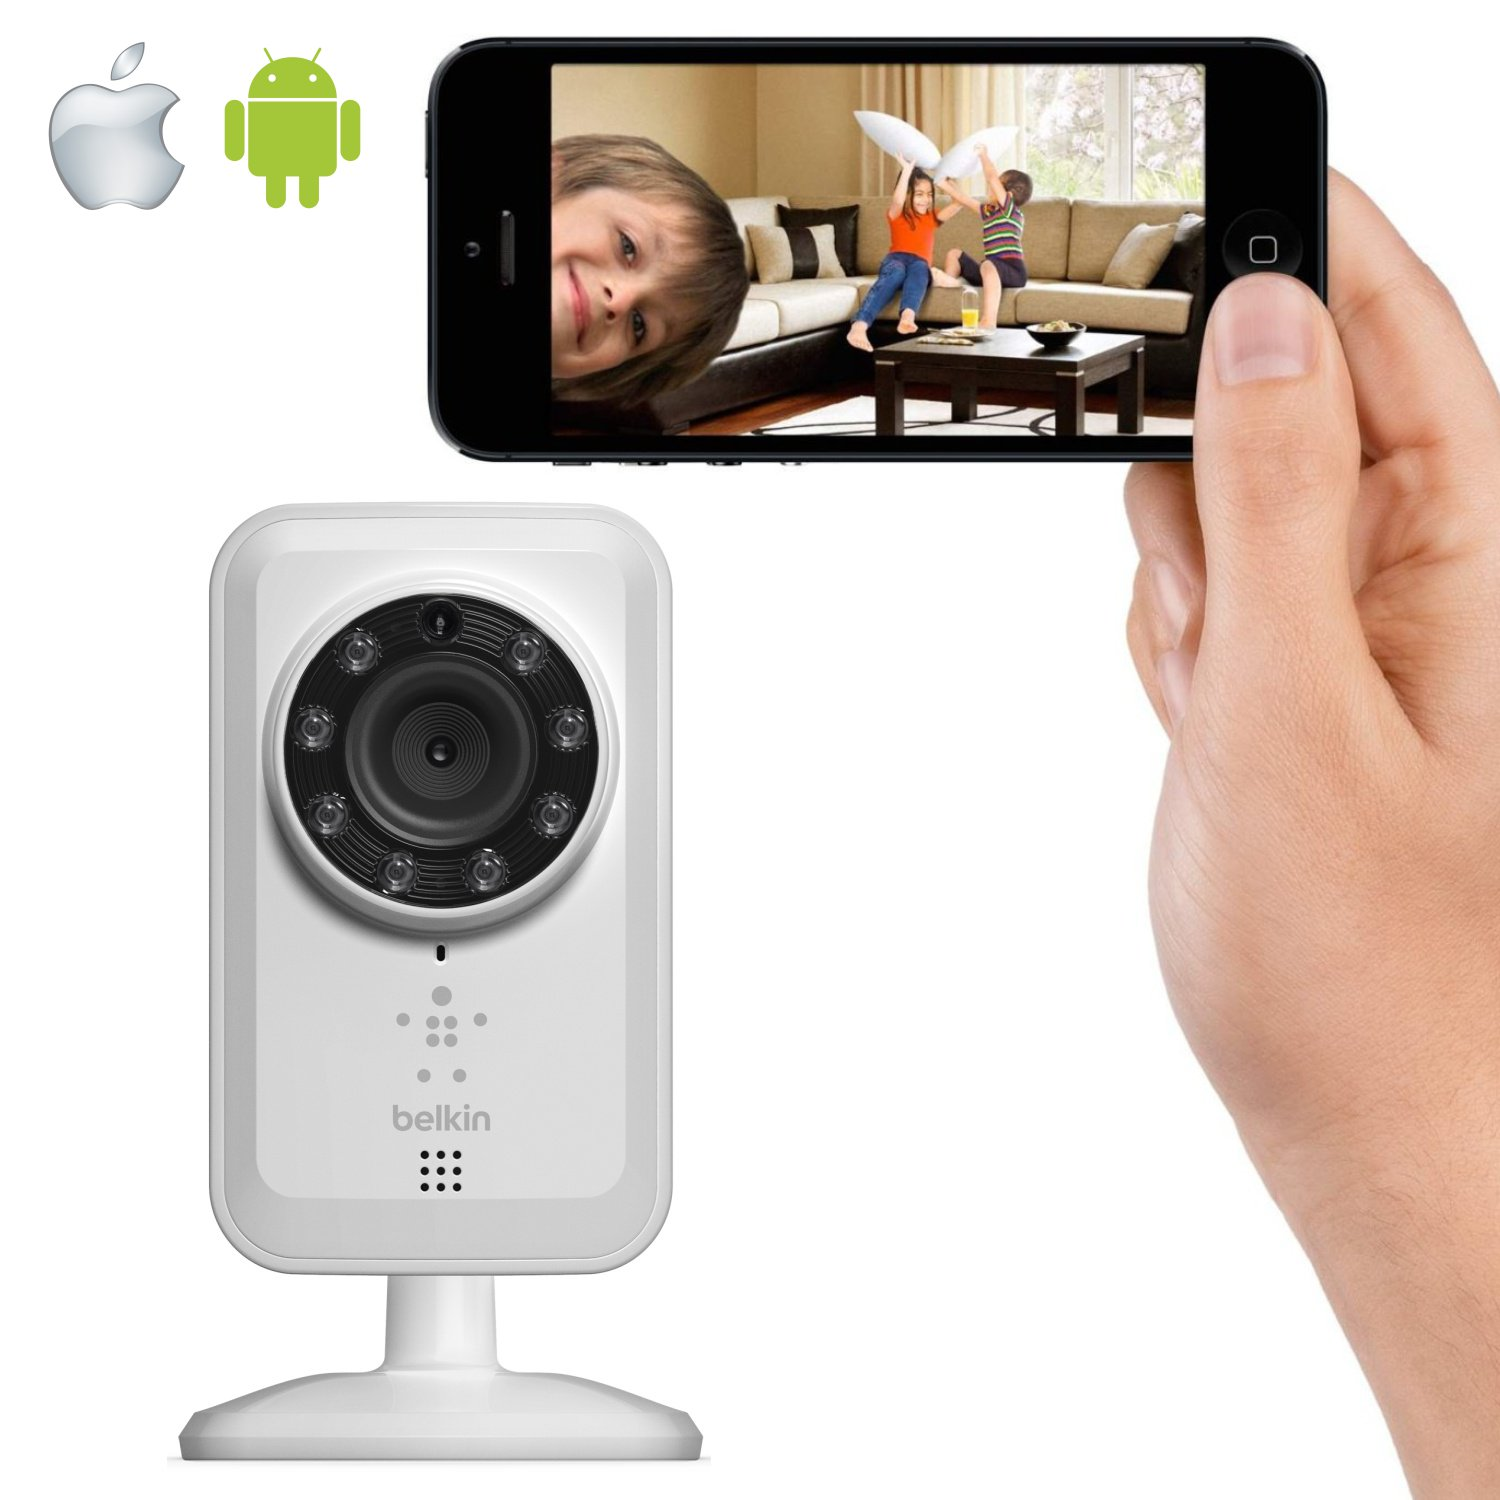 belkin netcam apple iphone ipad ipod android. Black Bedroom Furniture Sets. Home Design Ideas